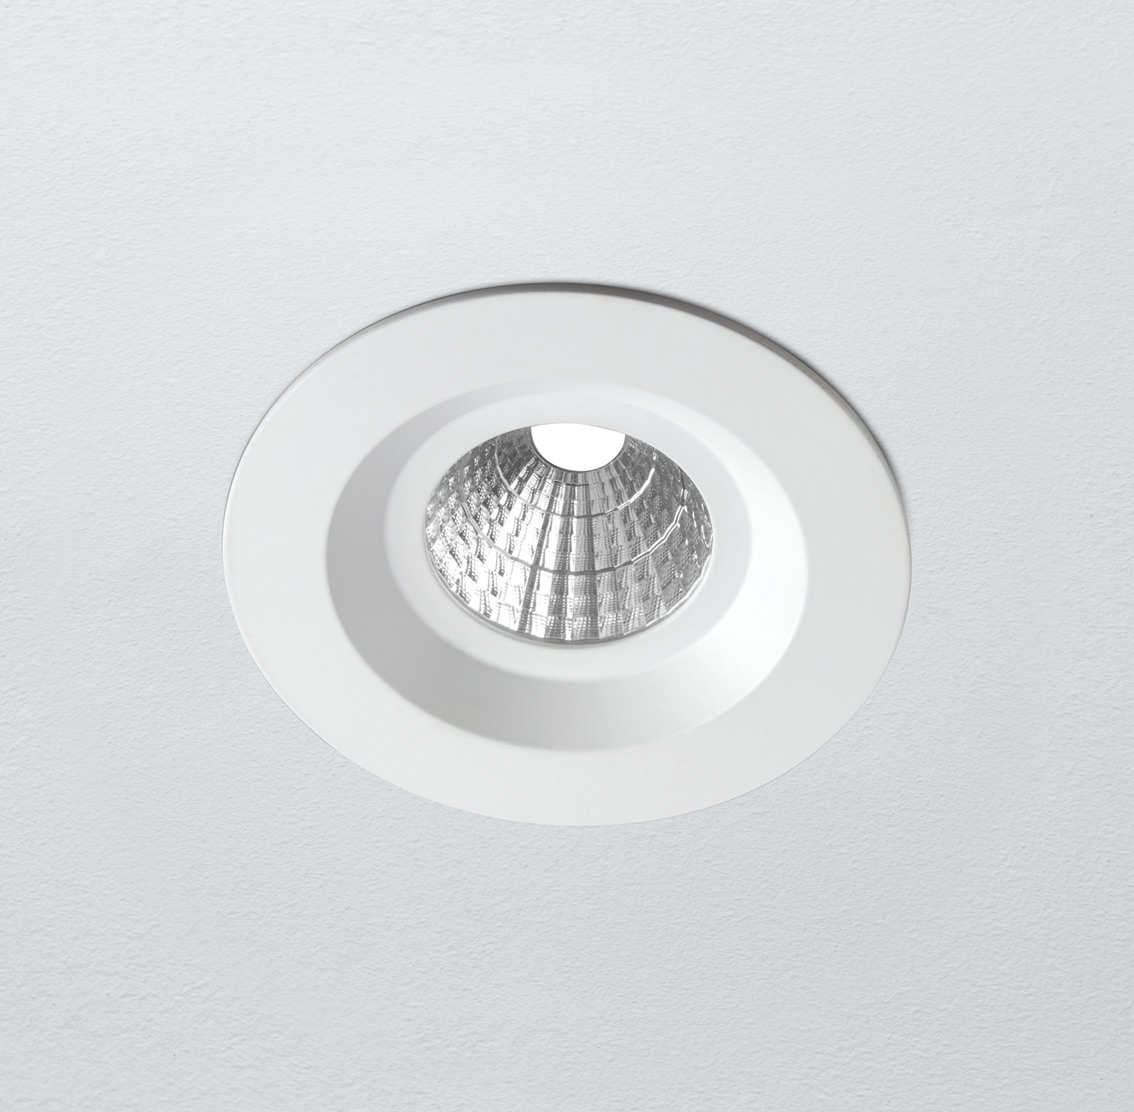 MICRO LED Recessed Spotlight By Biffi Luce